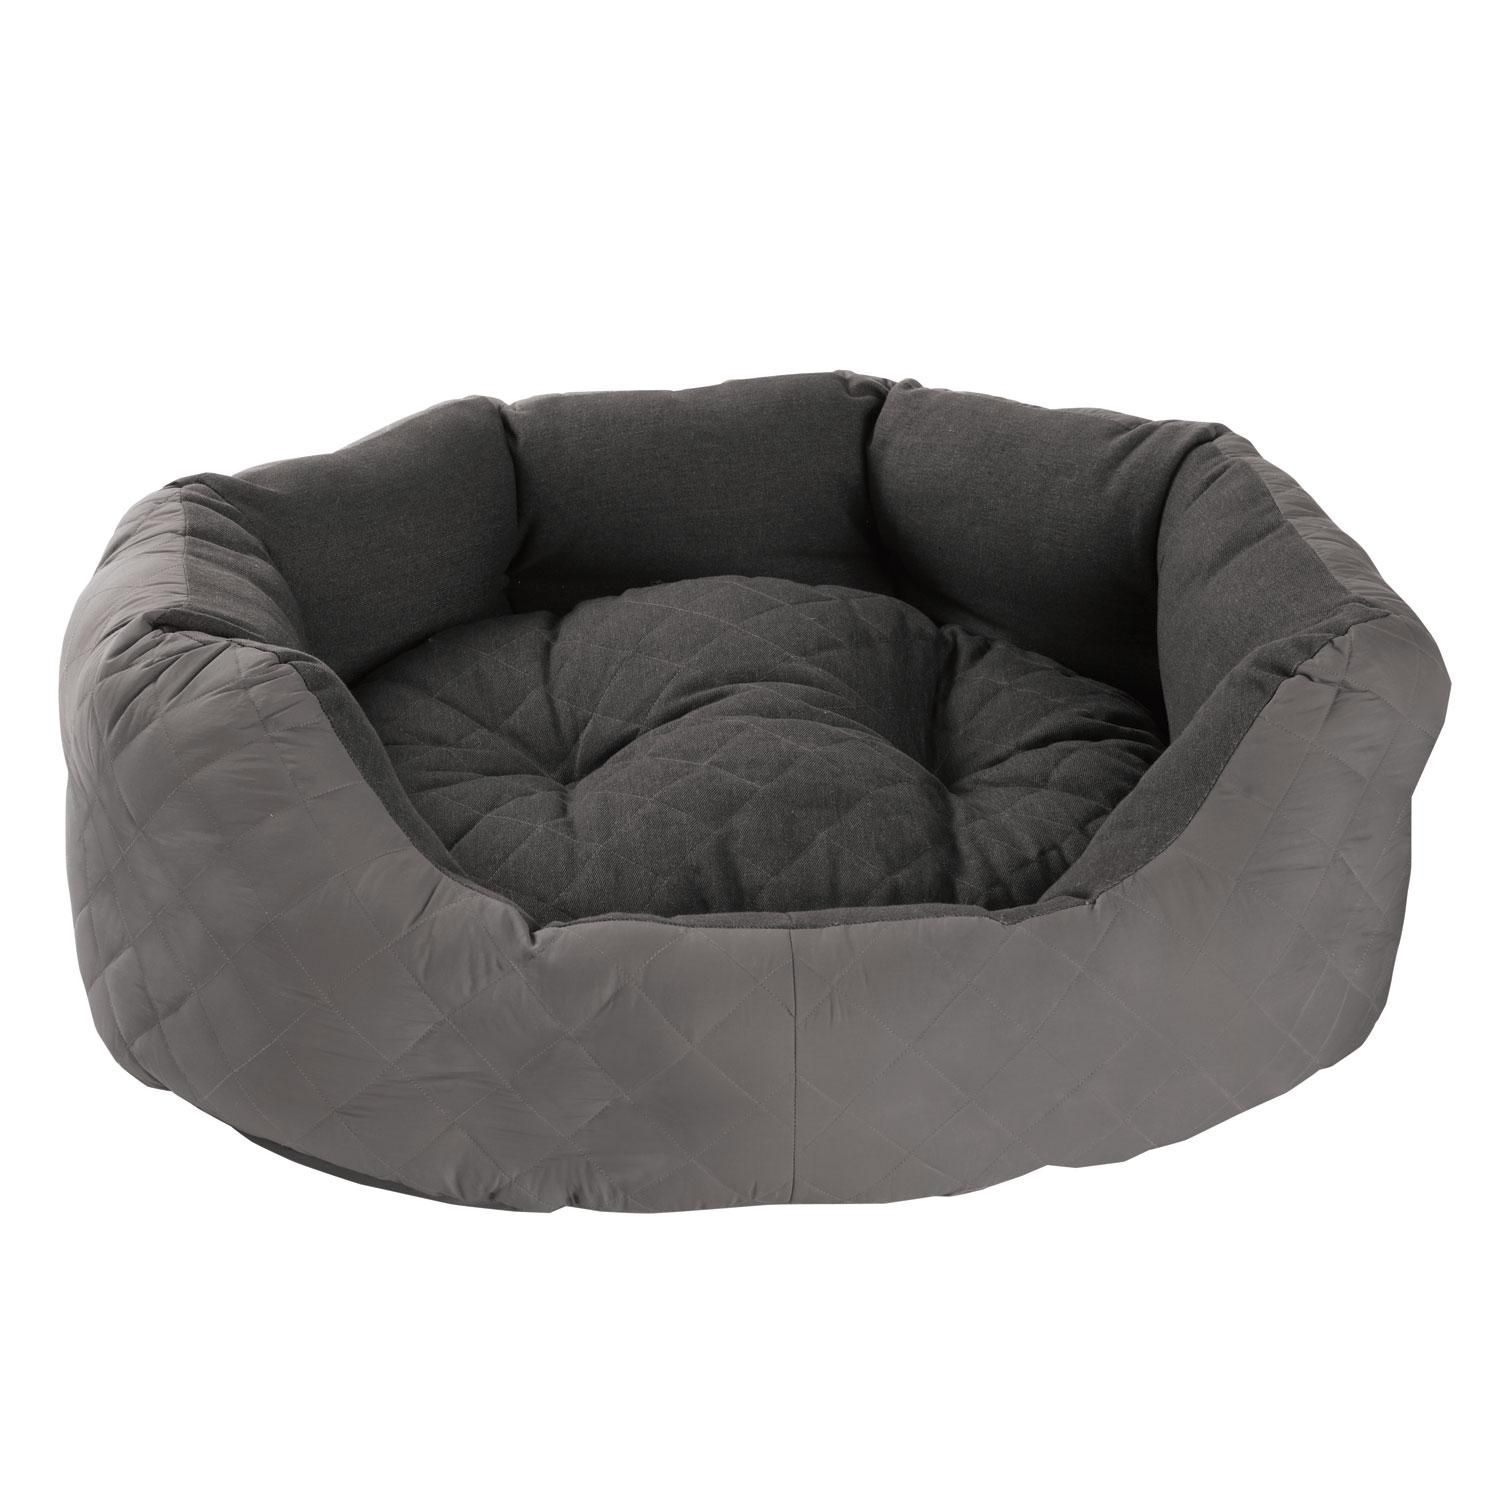 Slumber Dog Bed Medium The Company Store In 2020 Dog Bed